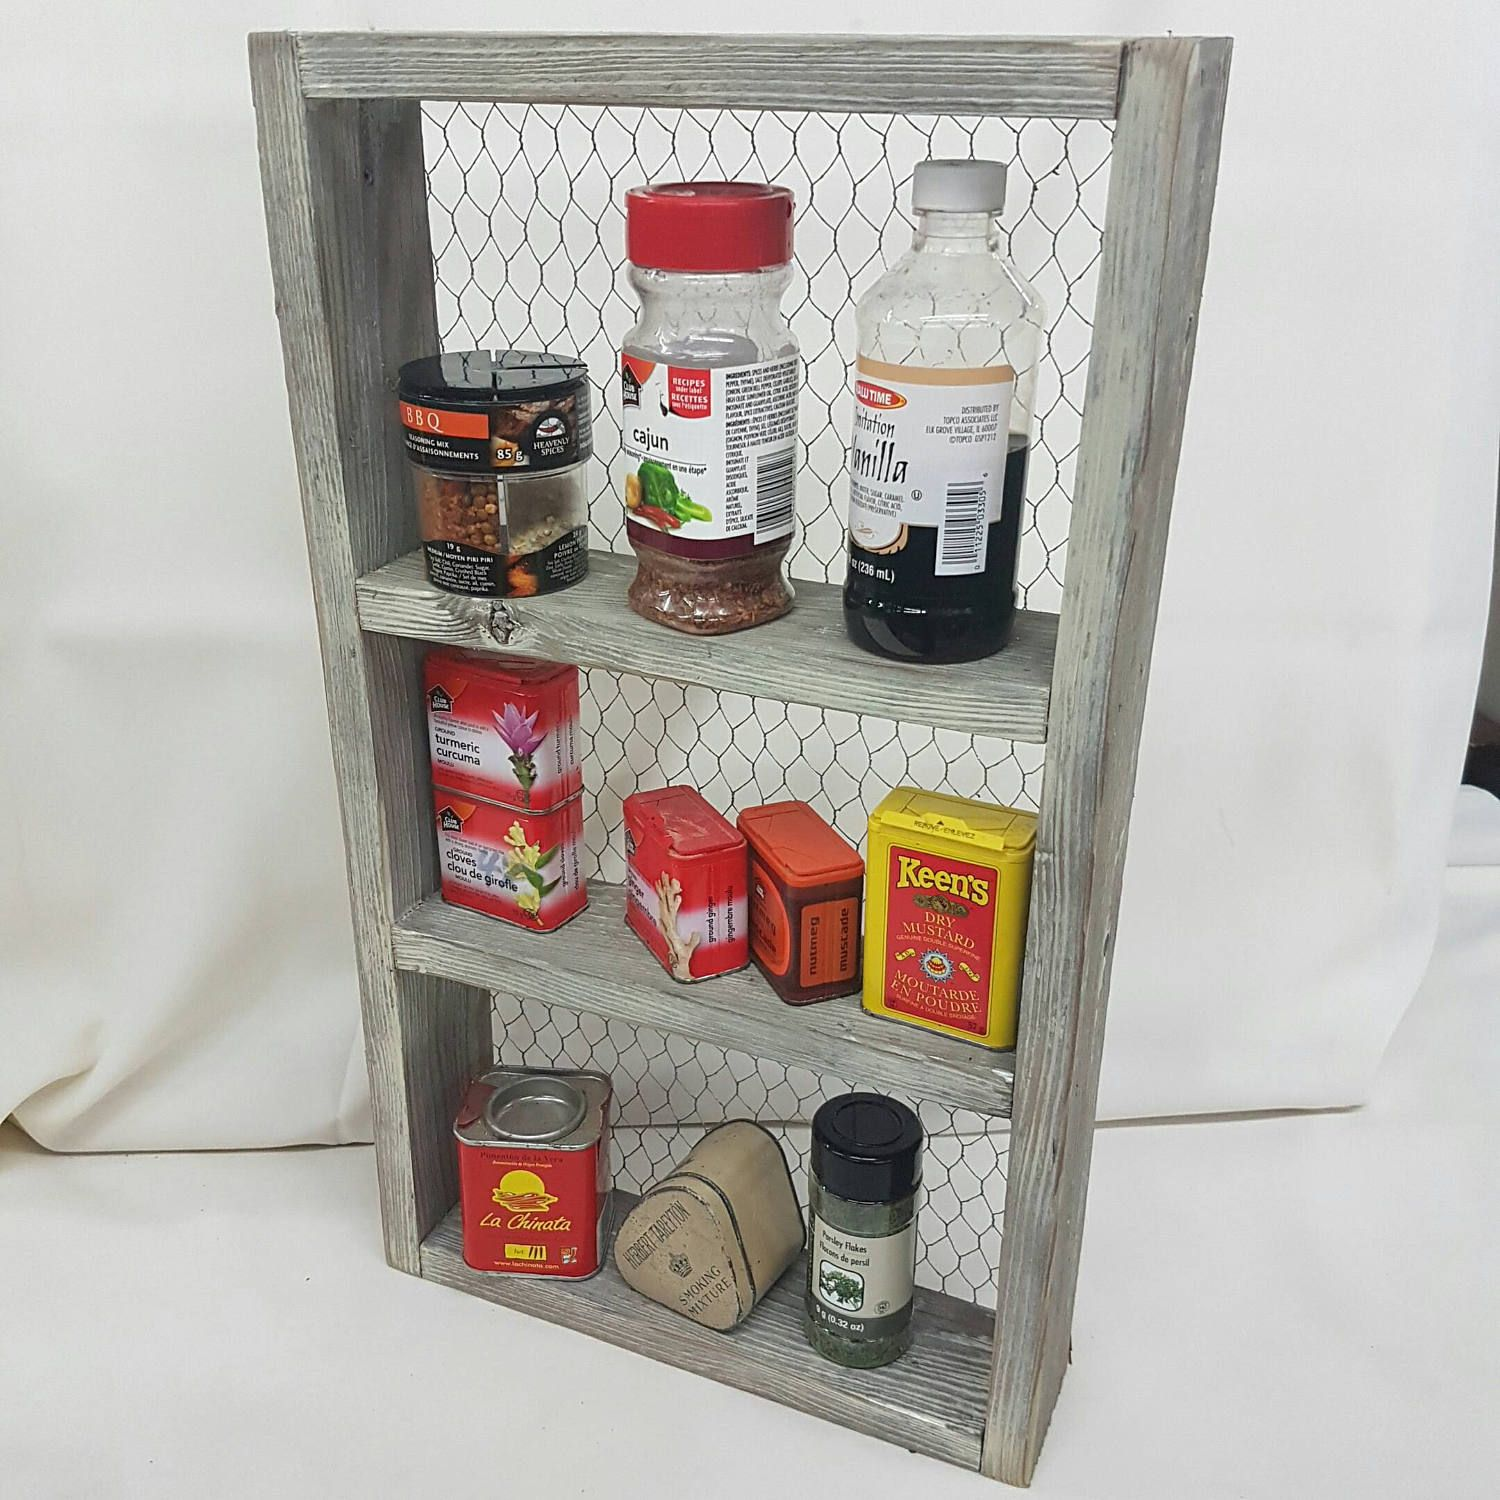 Woodworking Plans For Kitchen Spice Rack: Country Kitchen Spice Rack Shelf